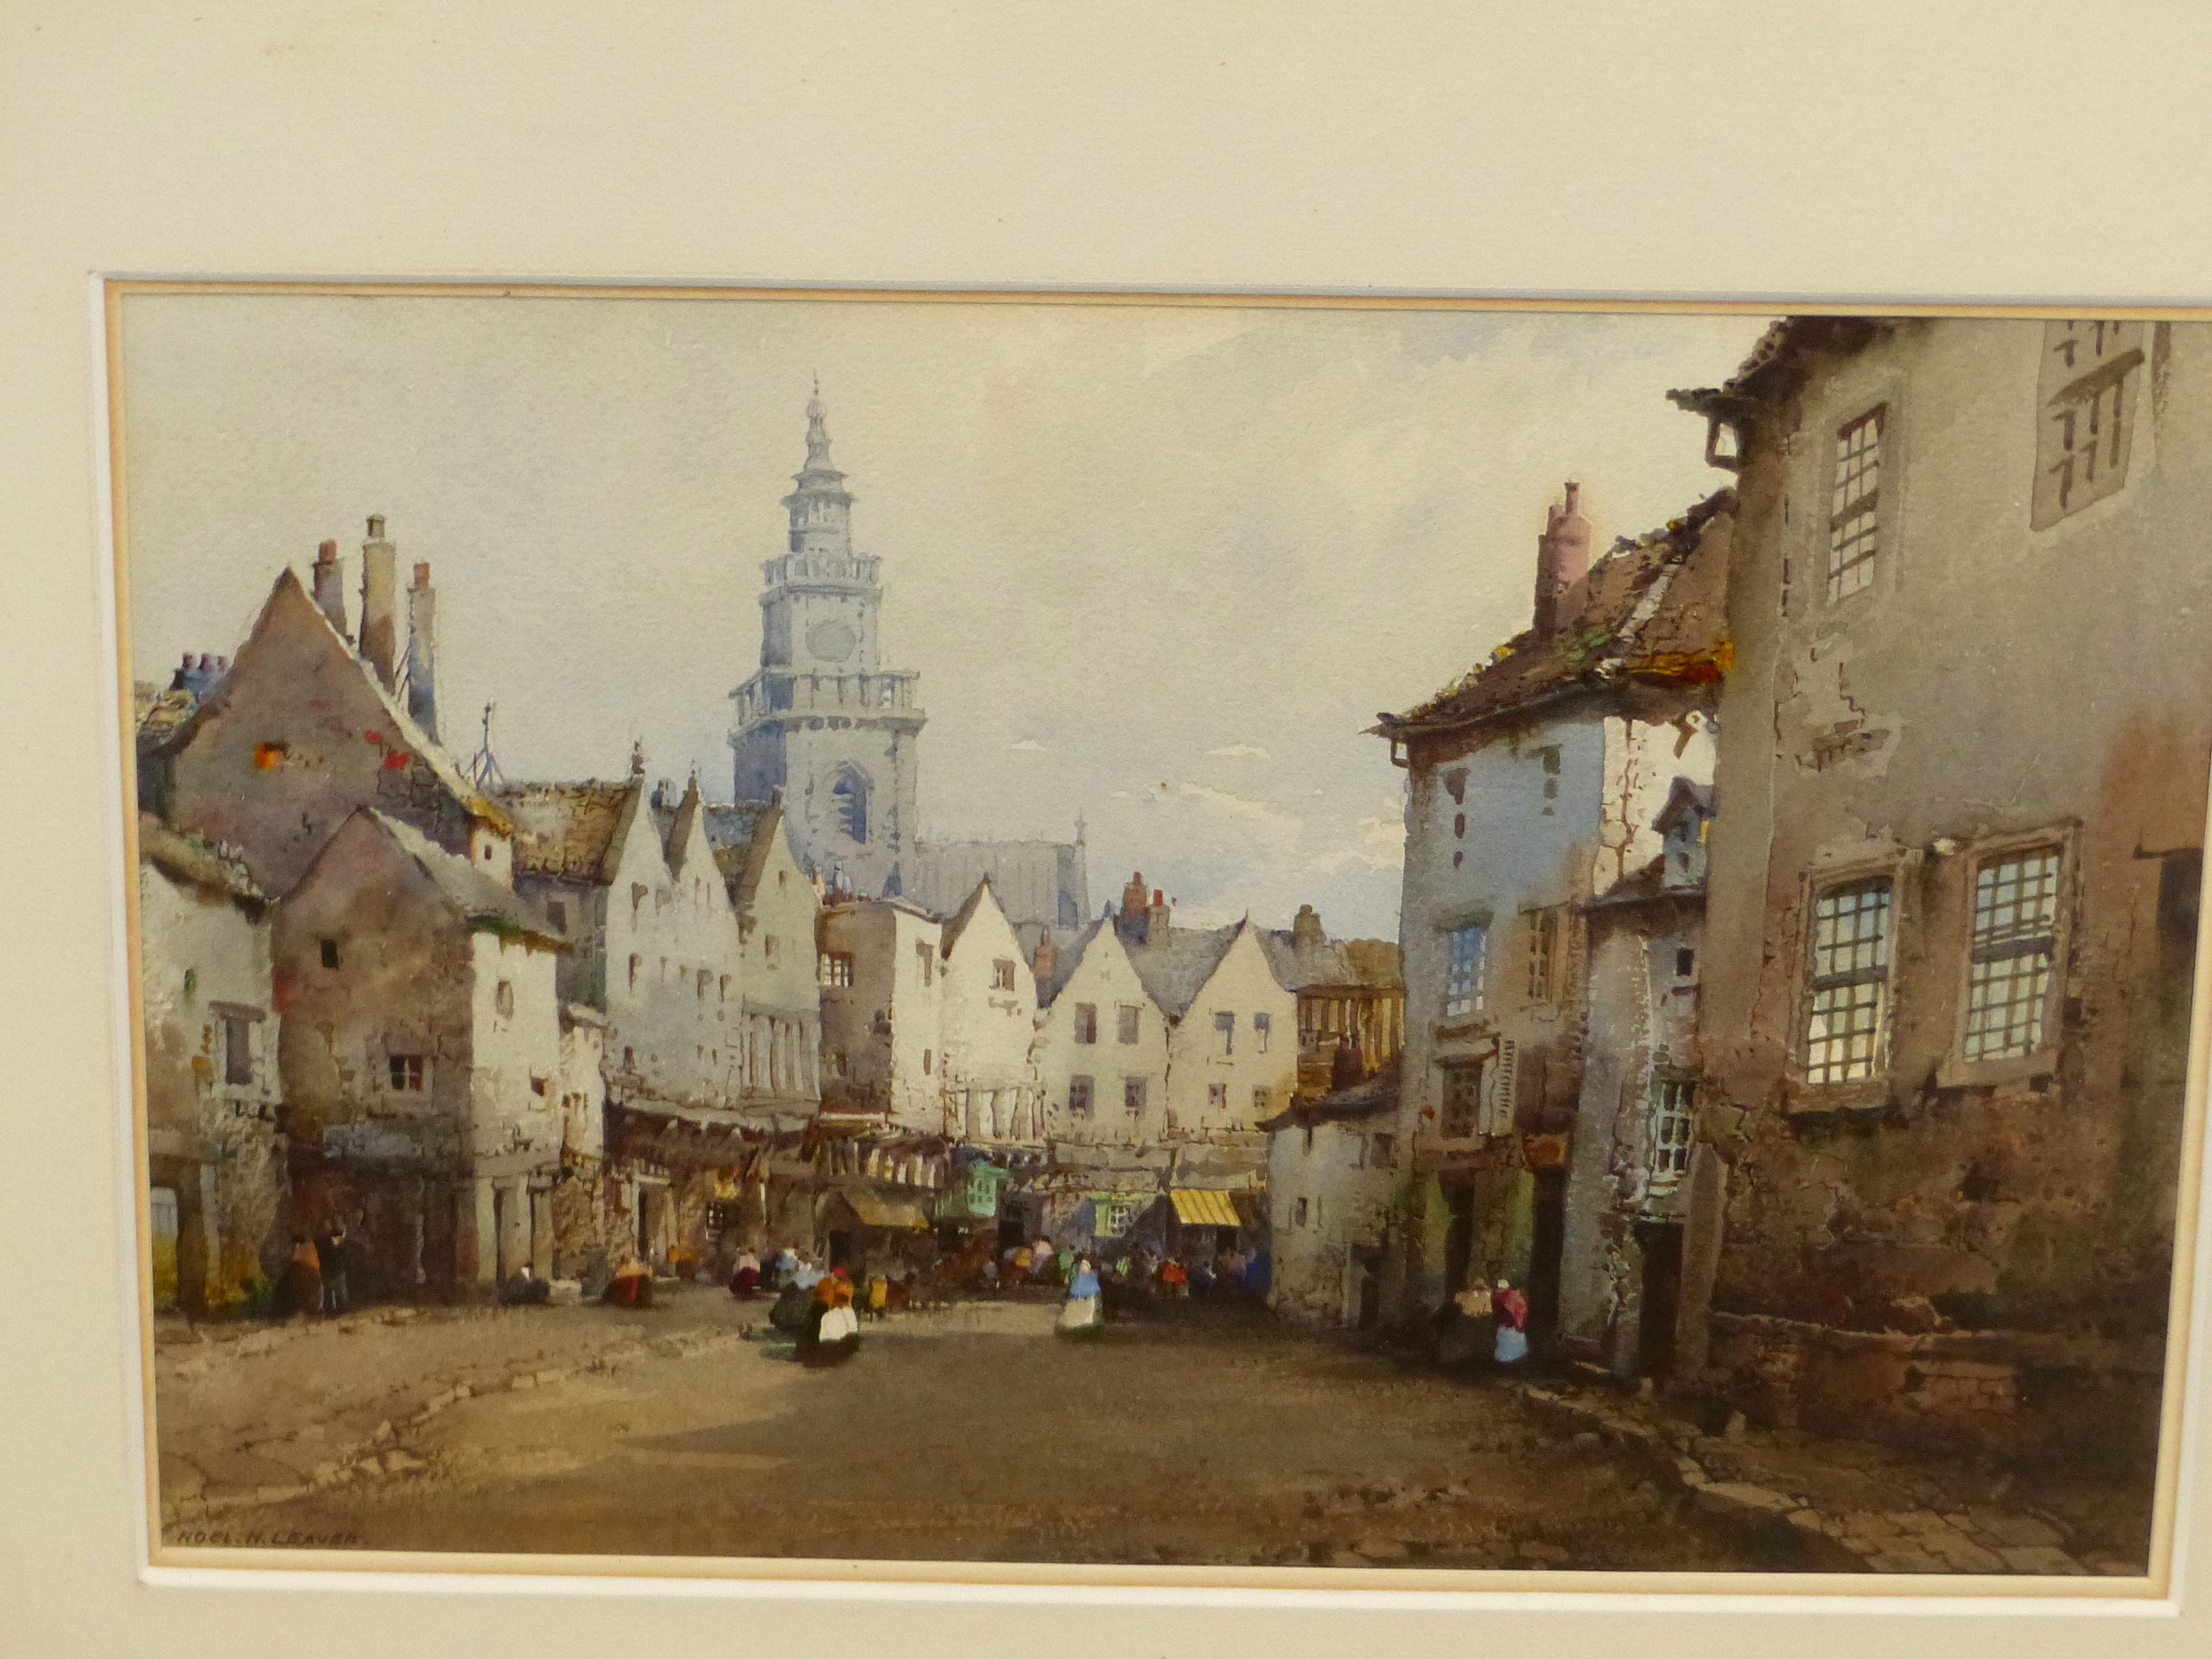 NOEL H LEAVER (1889-1951) THE TOWN MARKET, SIGNED WATERCOLOUR 18 x 26cm - Image 2 of 5